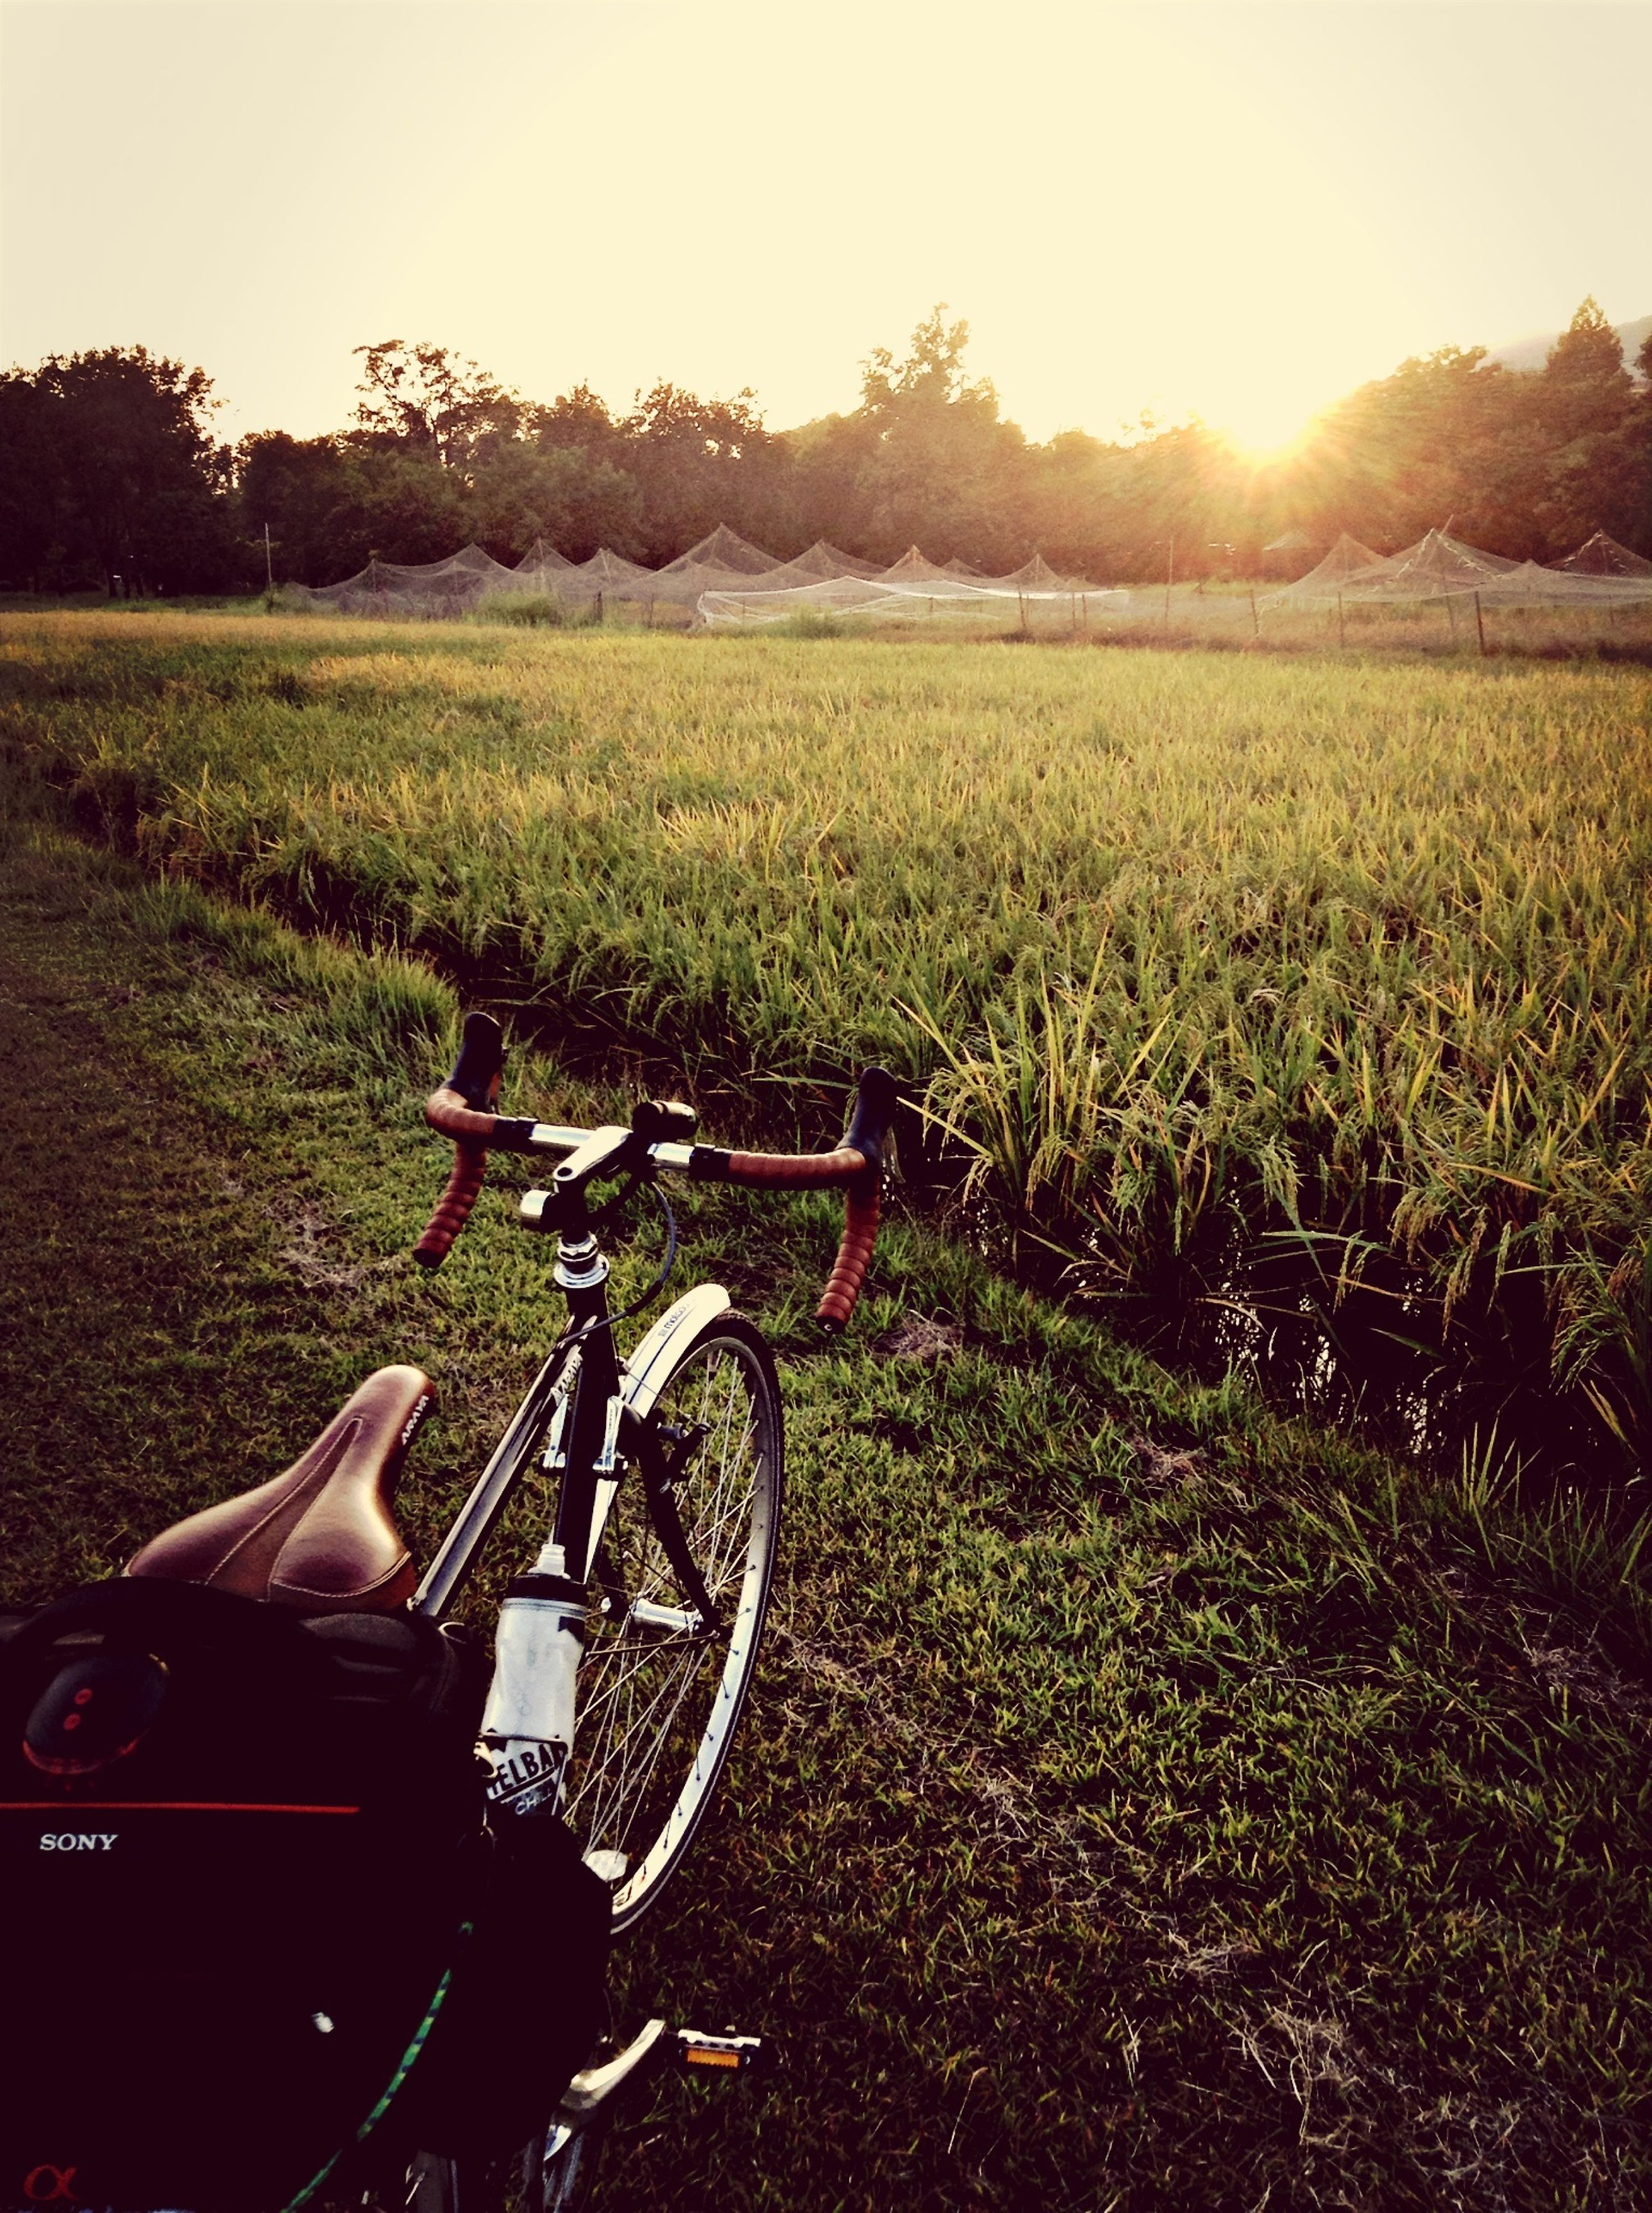 transportation, land vehicle, mode of transport, bicycle, grass, field, car, landscape, sunlight, sun, grassy, stationary, riding, road, clear sky, sunbeam, nature, parked, rural scene, parking